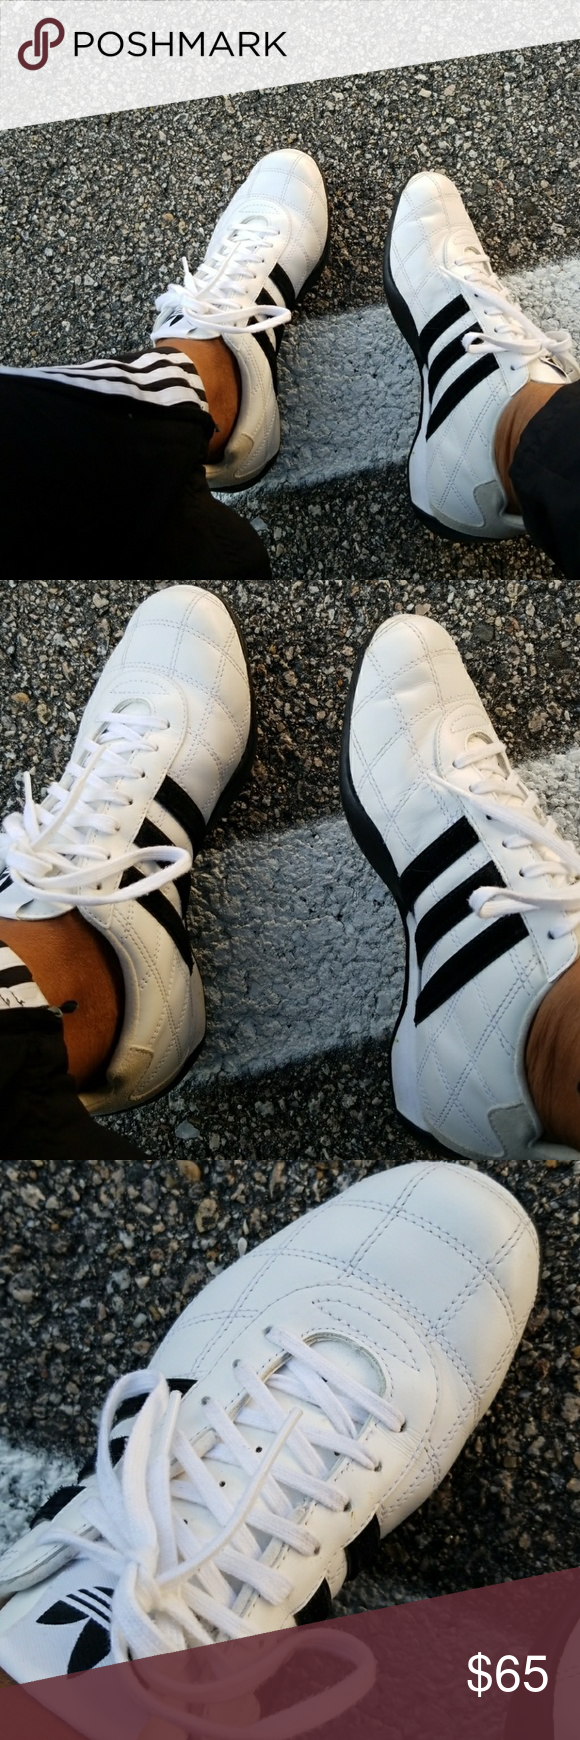 Selling this Adidas Tuscany Goodyear vintage sneakers on ...